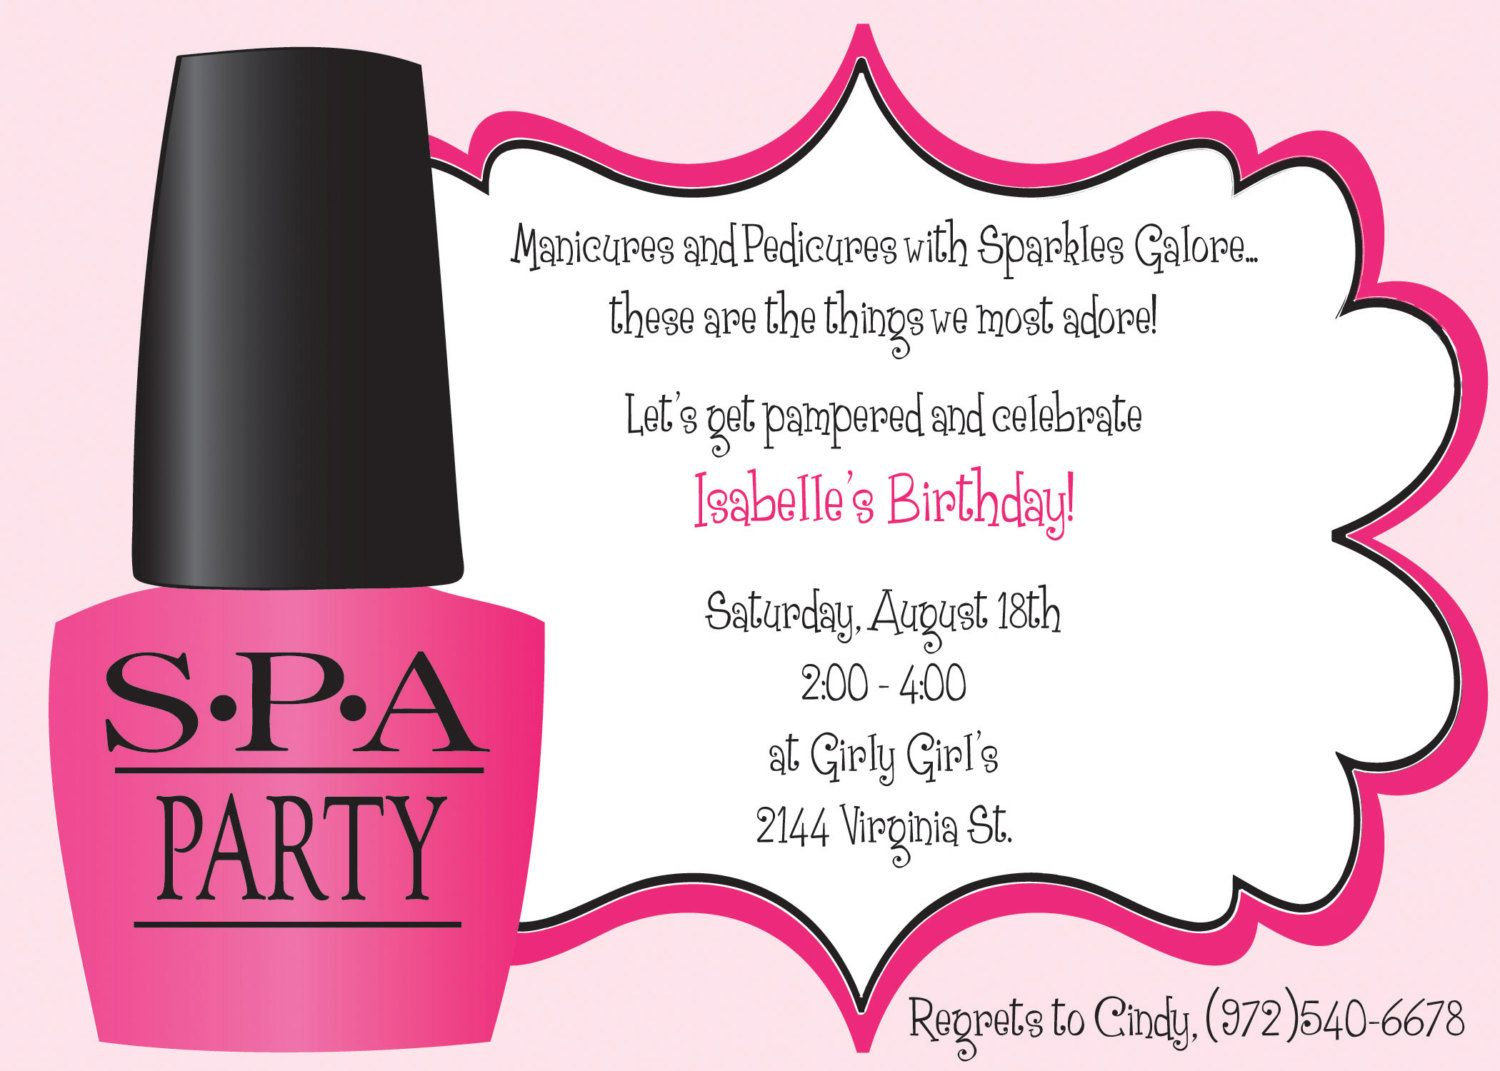 Ooh La La Spa Party Girls Birthday Invitation INCLUDES Return